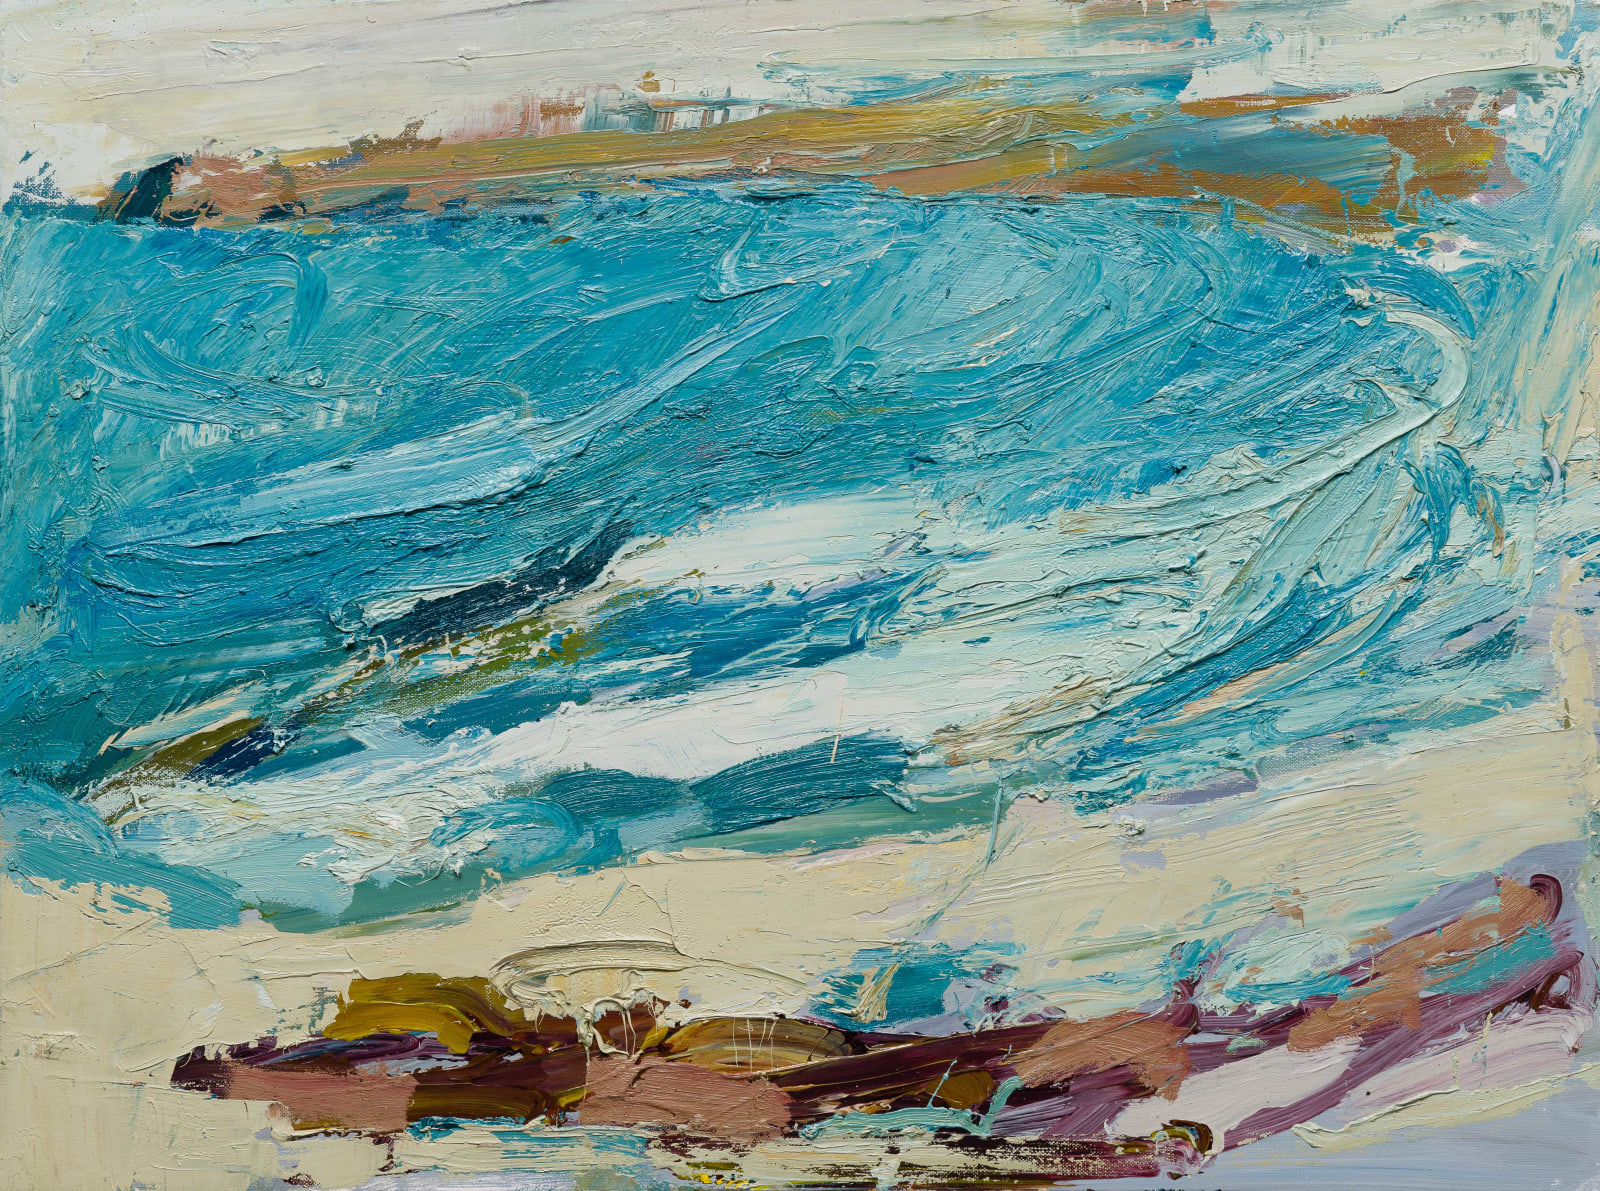 Paul Wadsworth, Winters Surf on a Blue Day